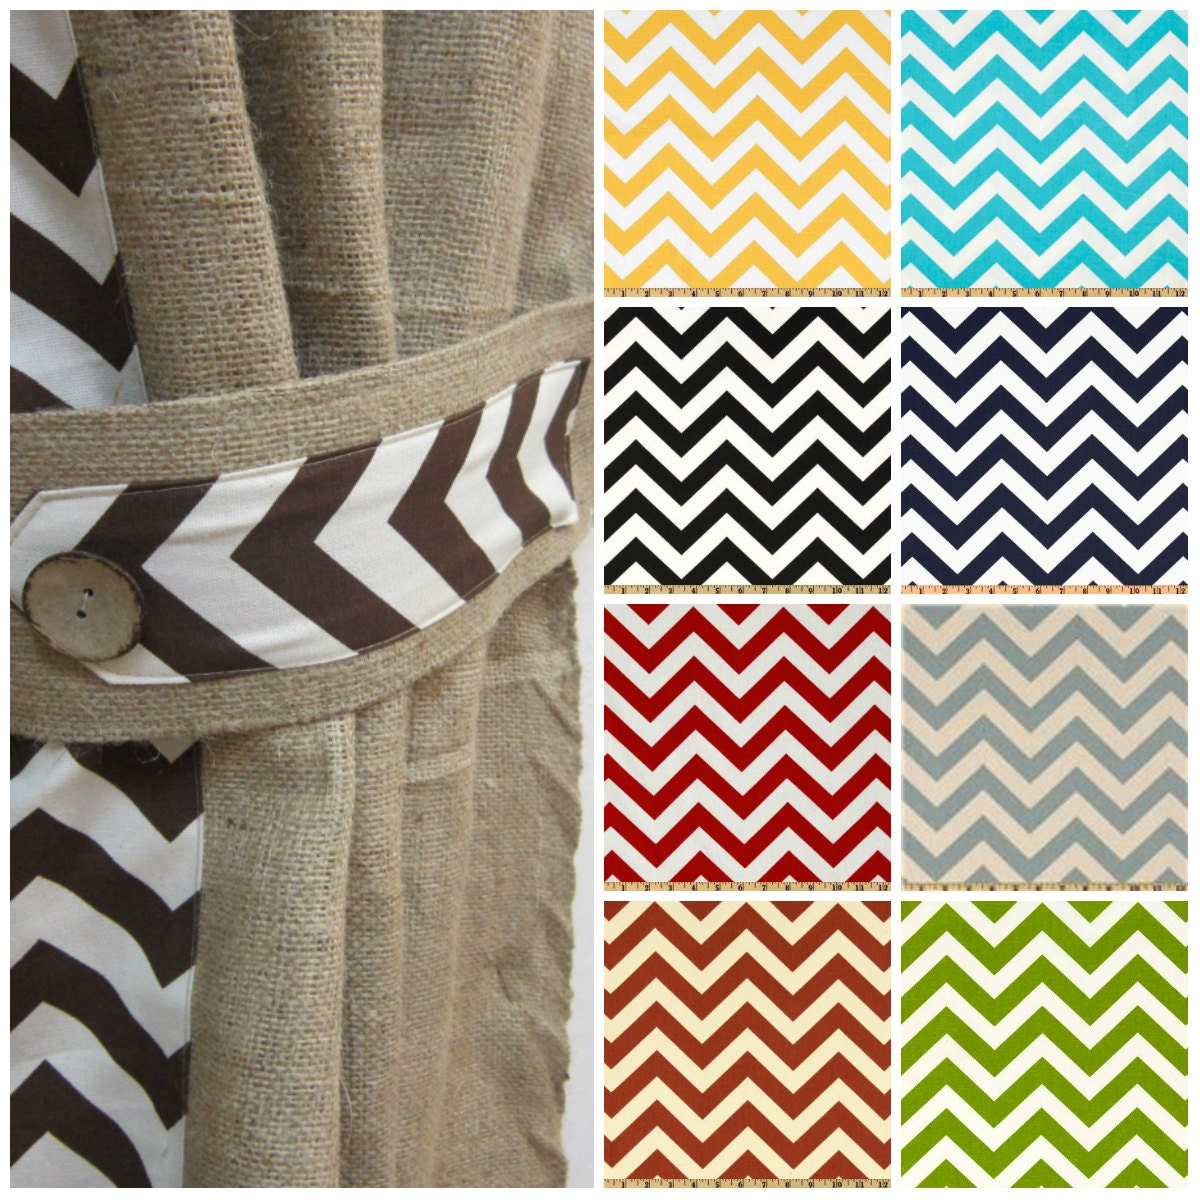 Drapery panel/Window Treatments/Burlap curtains/Chevron curtains ...